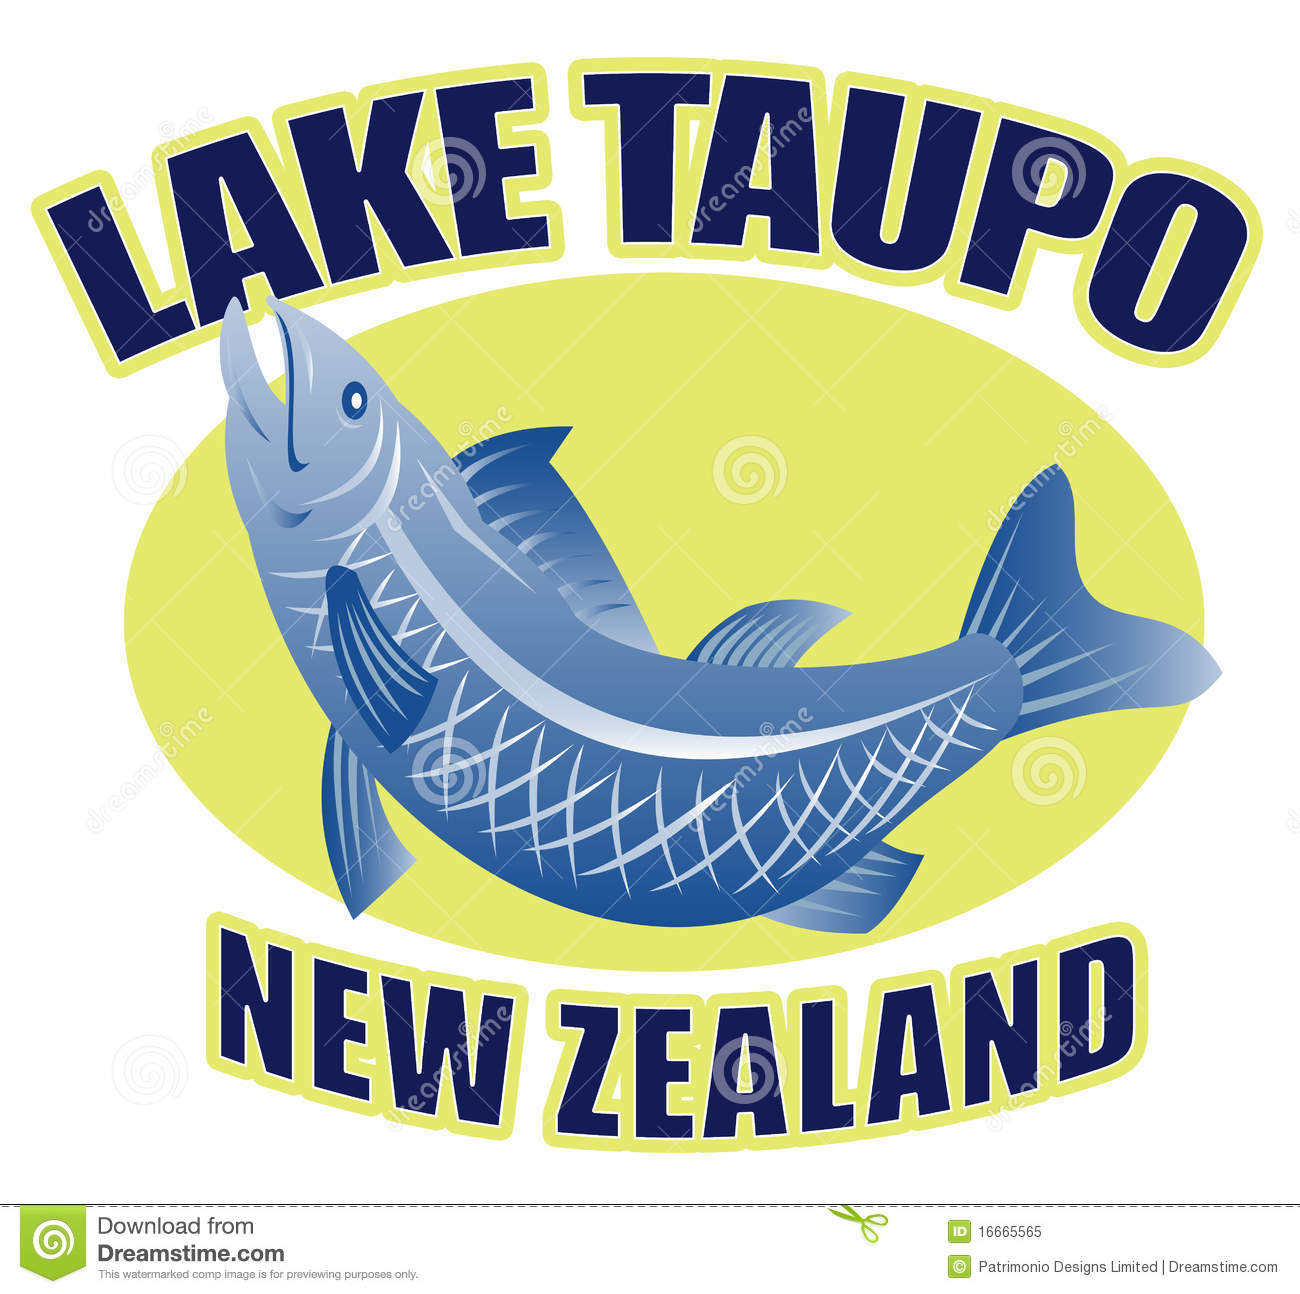 Trout Fish Lake Taupo New Zealand Royalty Free Stock Photo.